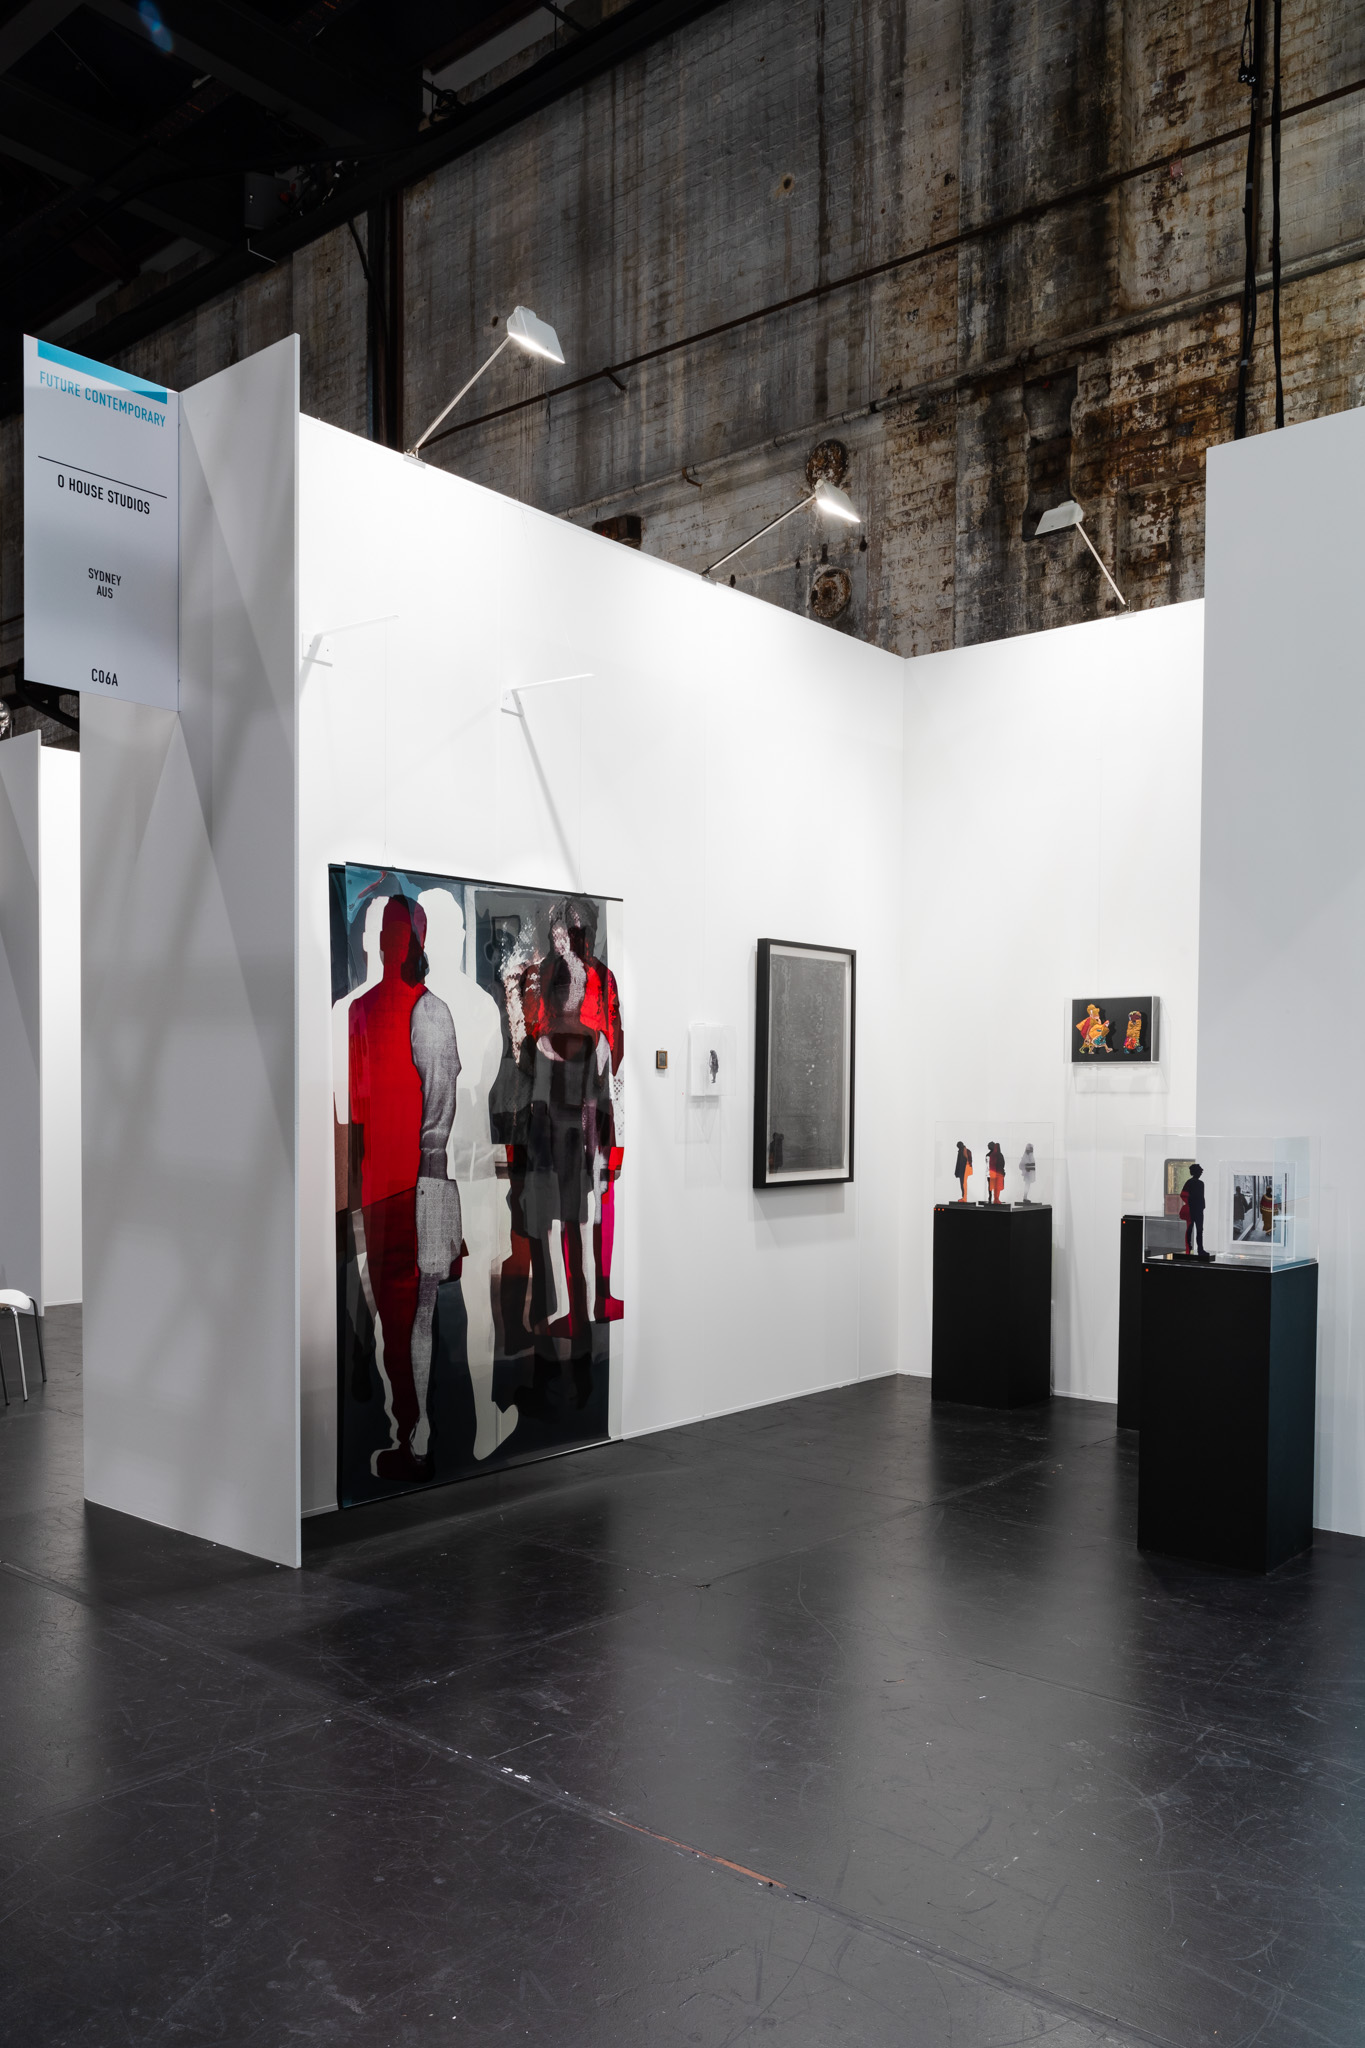 OHouseStudios_SydContemporary_13_09_18_Credit_Jacquie_Manning-1.jpg